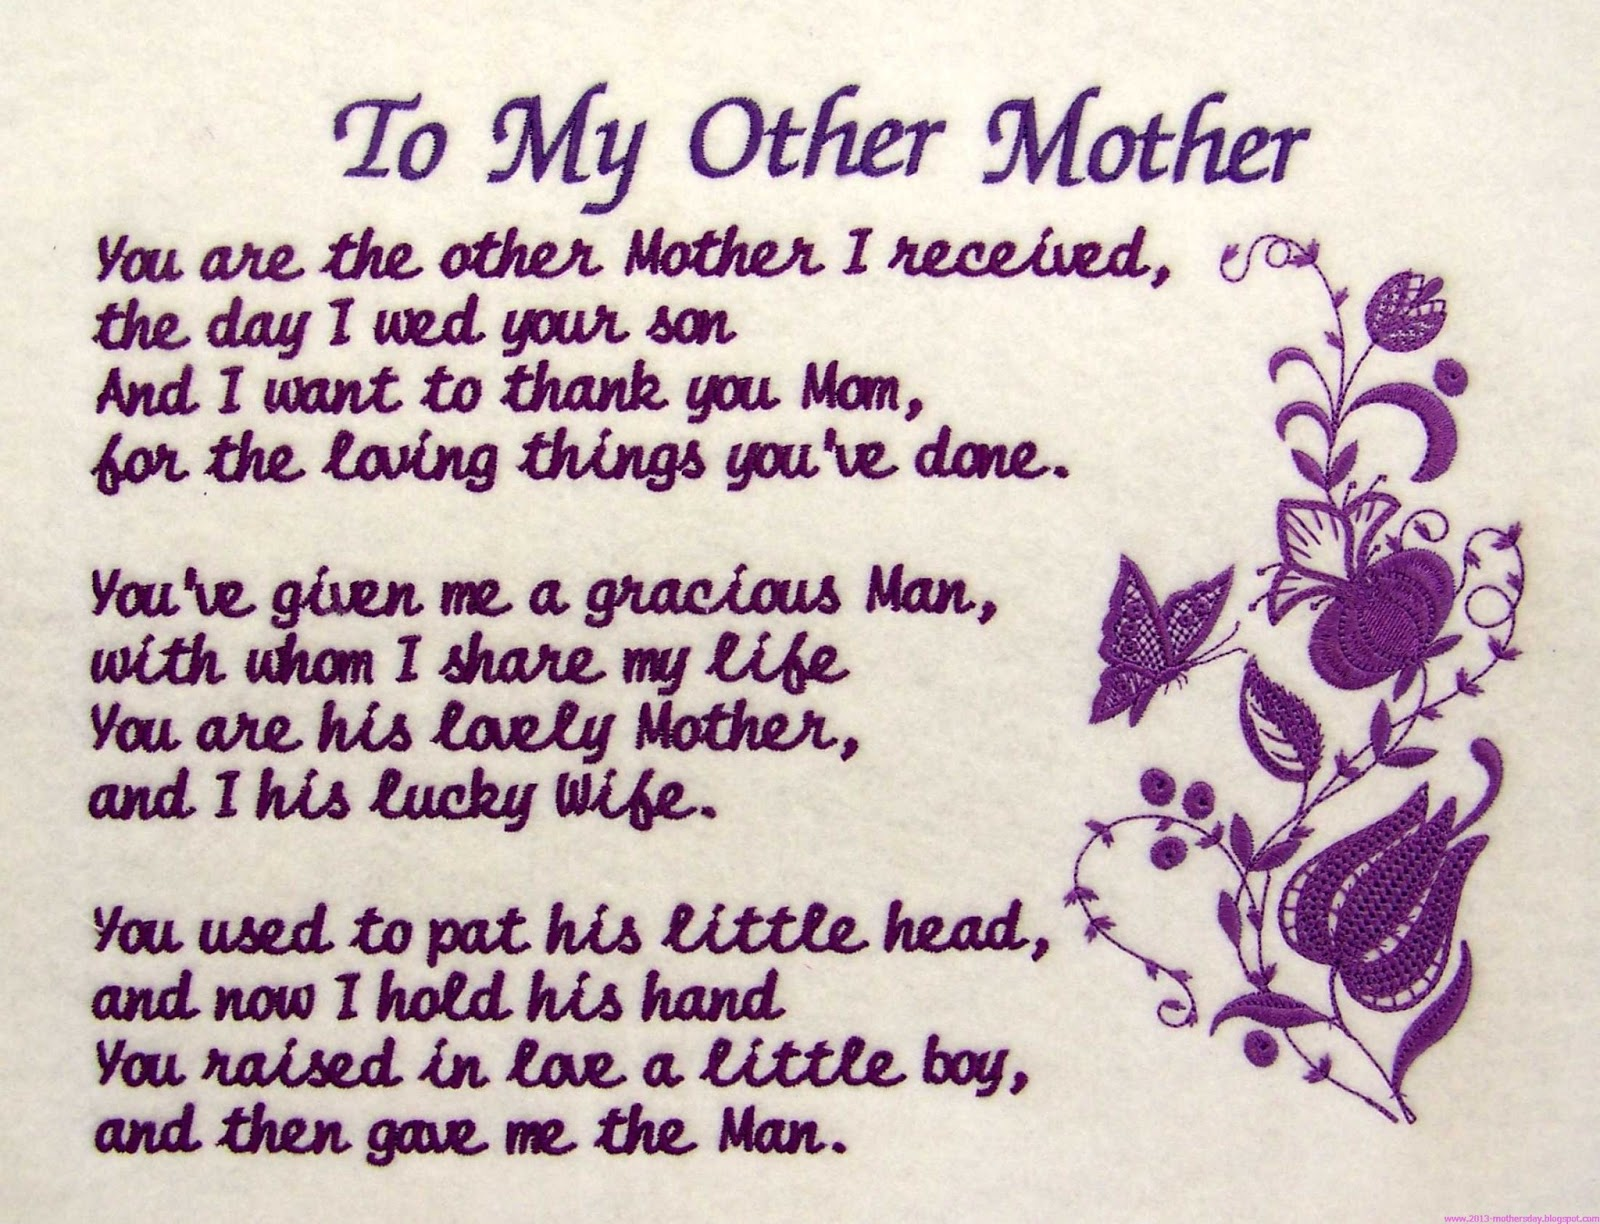 Mothers Day 2013 Poems Mother's day poems to mother